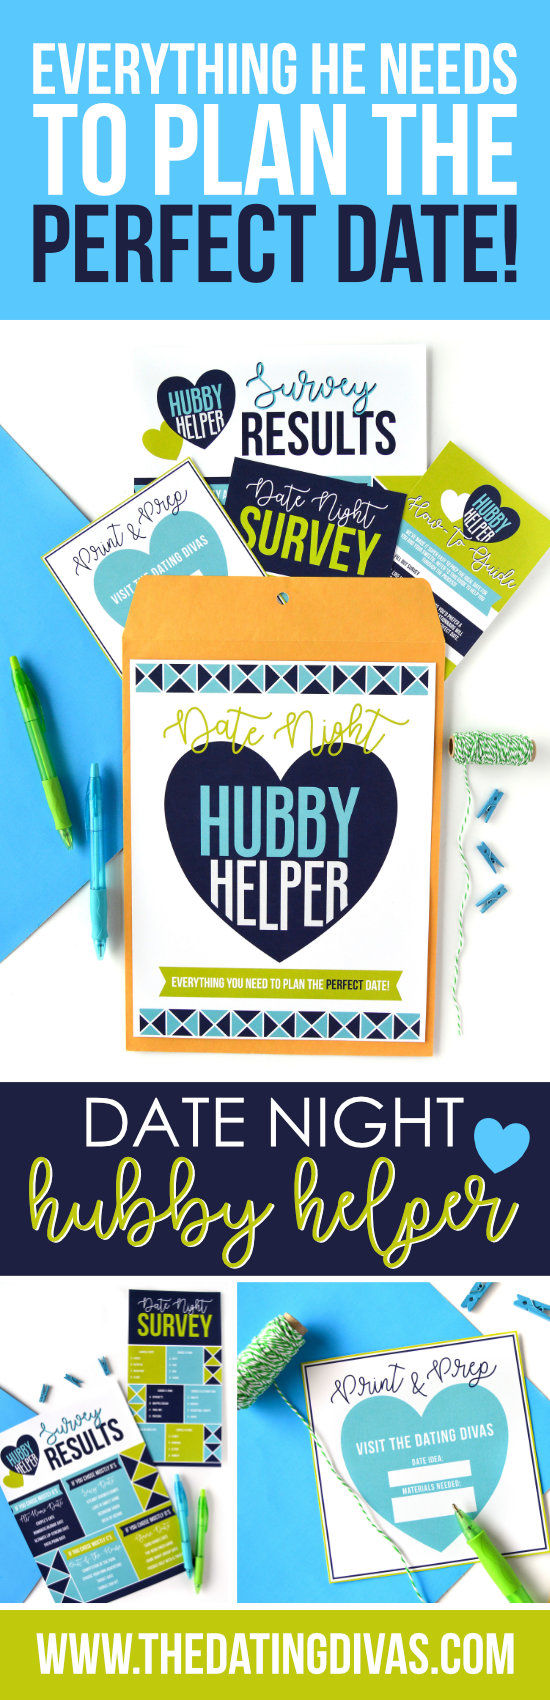 Helping Husbands Plan Date Night Idea #datenight #dateideas